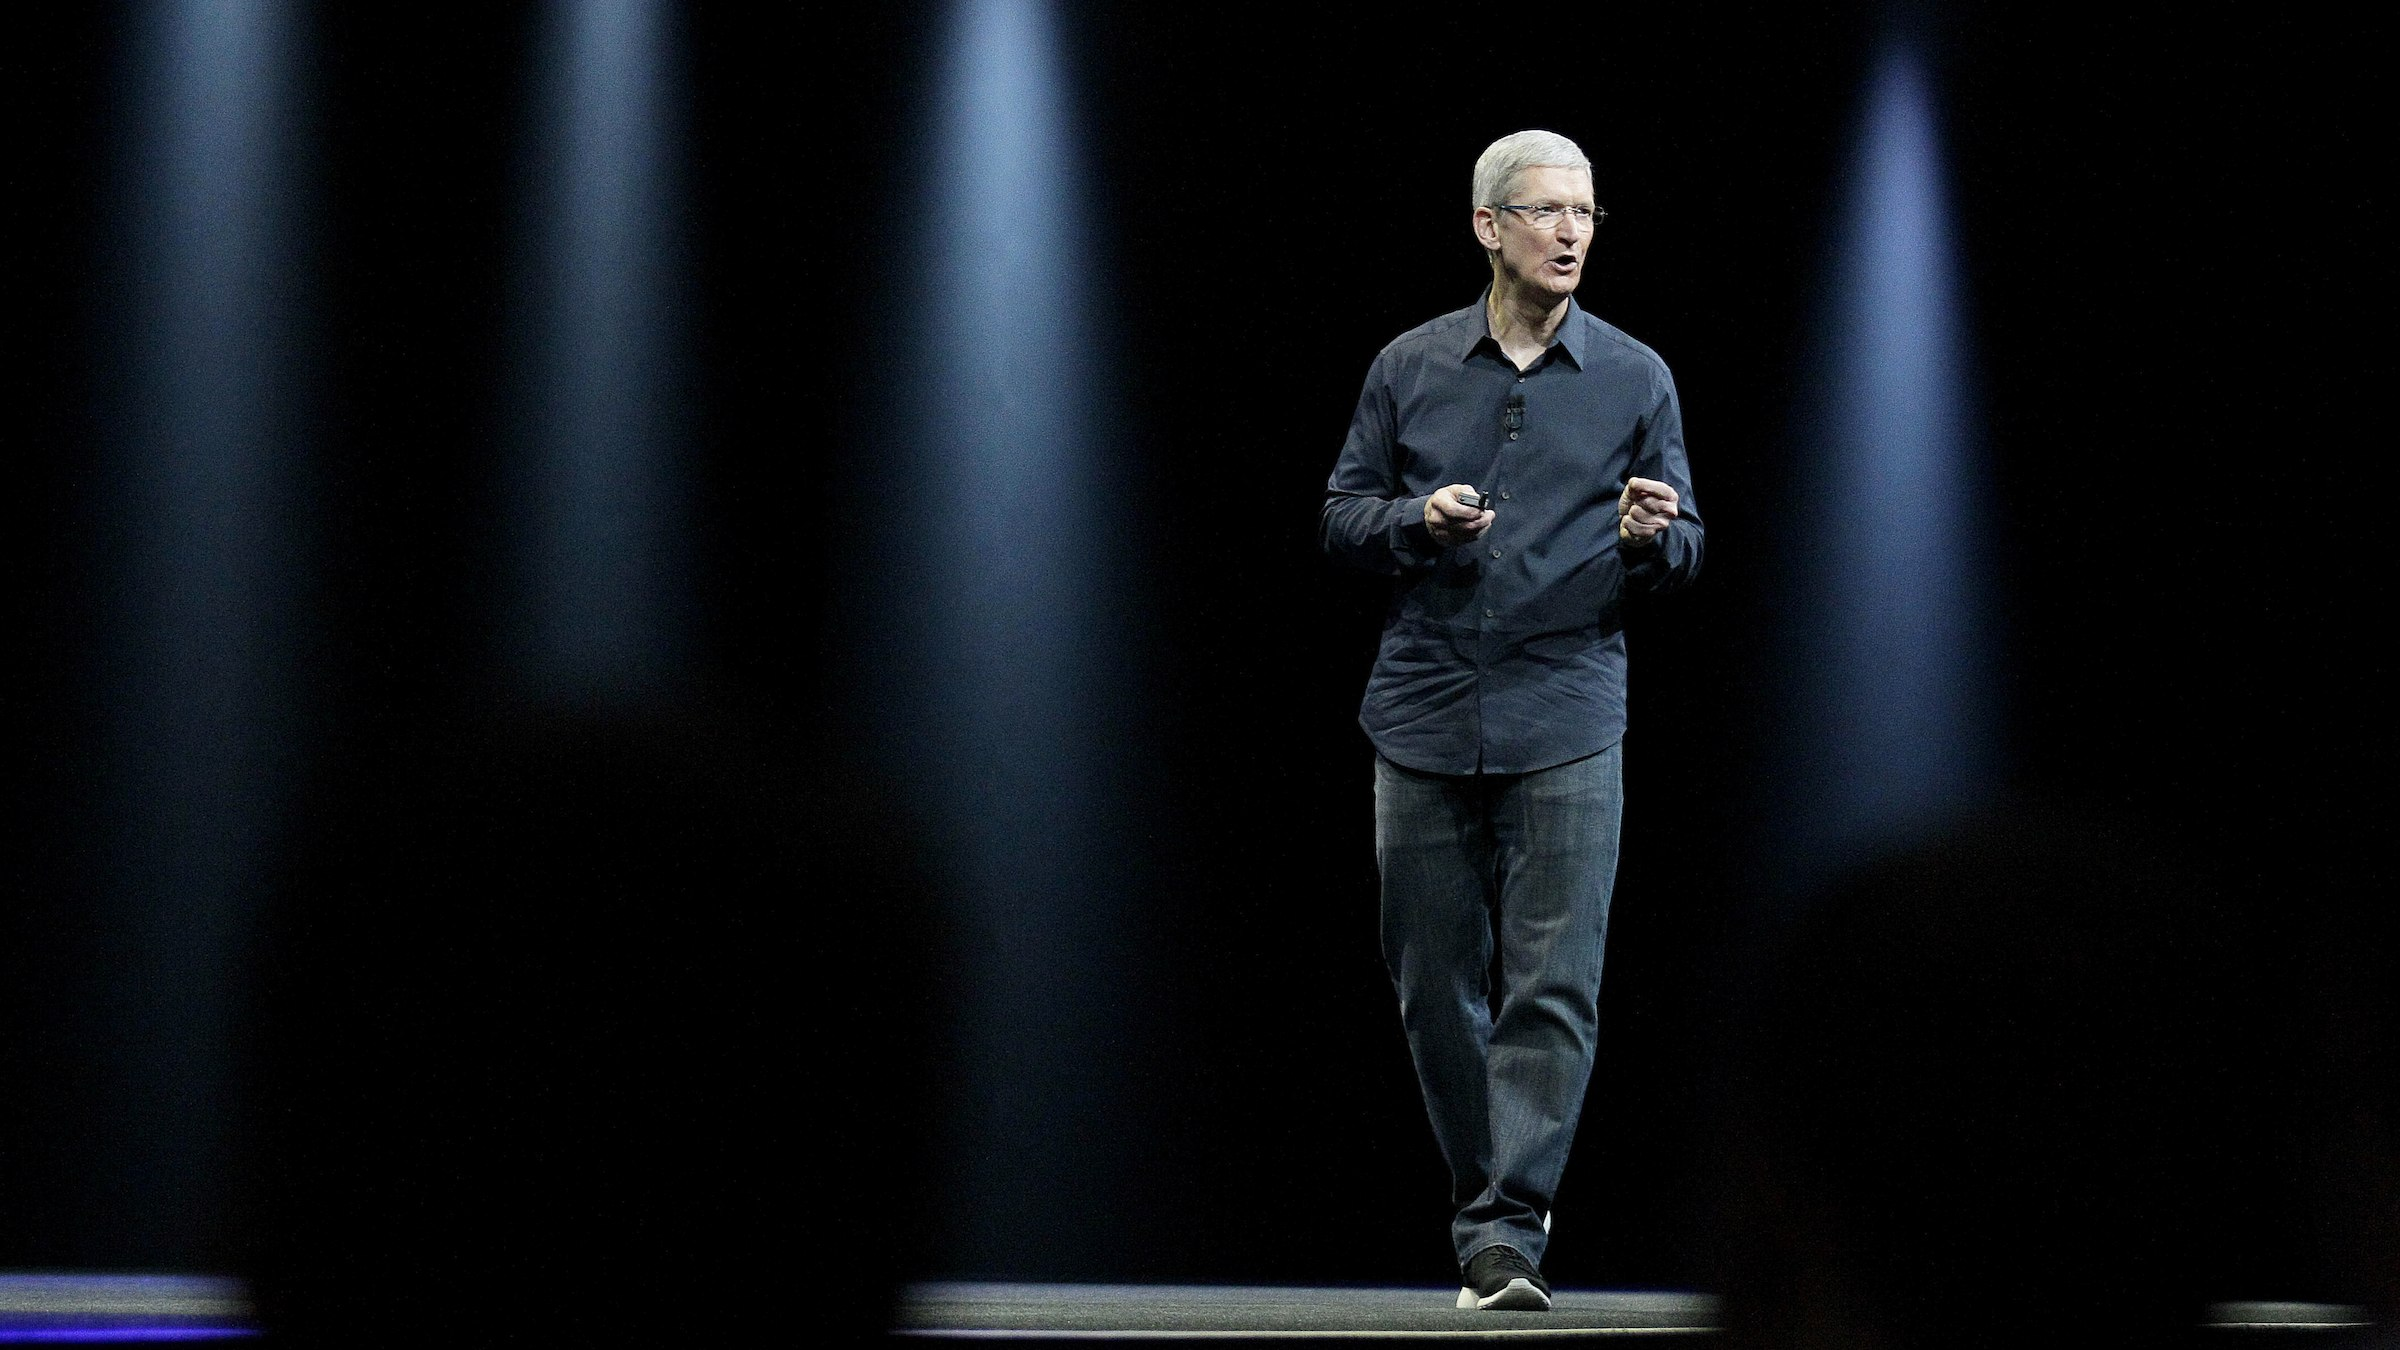 Apple CEO Tim Cook speaks at an Apple Worldwide Developers Conference event in San Francisco, Monday, June 2, 2014. (AP Photo/Jeff Chiu)